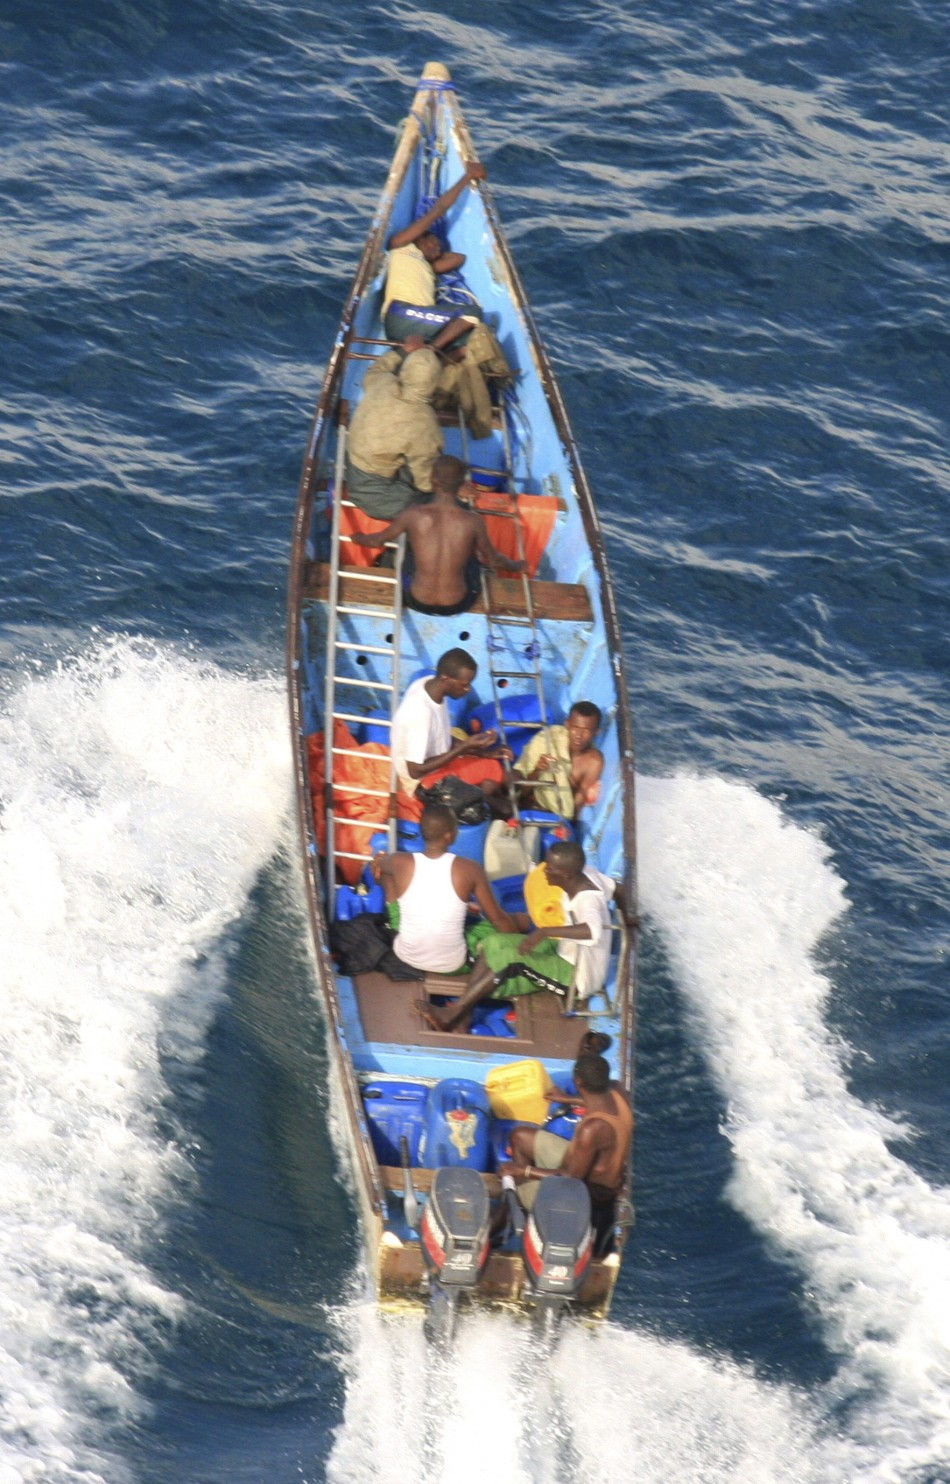 Suspected pirate skiff off coast of Somalia's northern port town of Bossaso